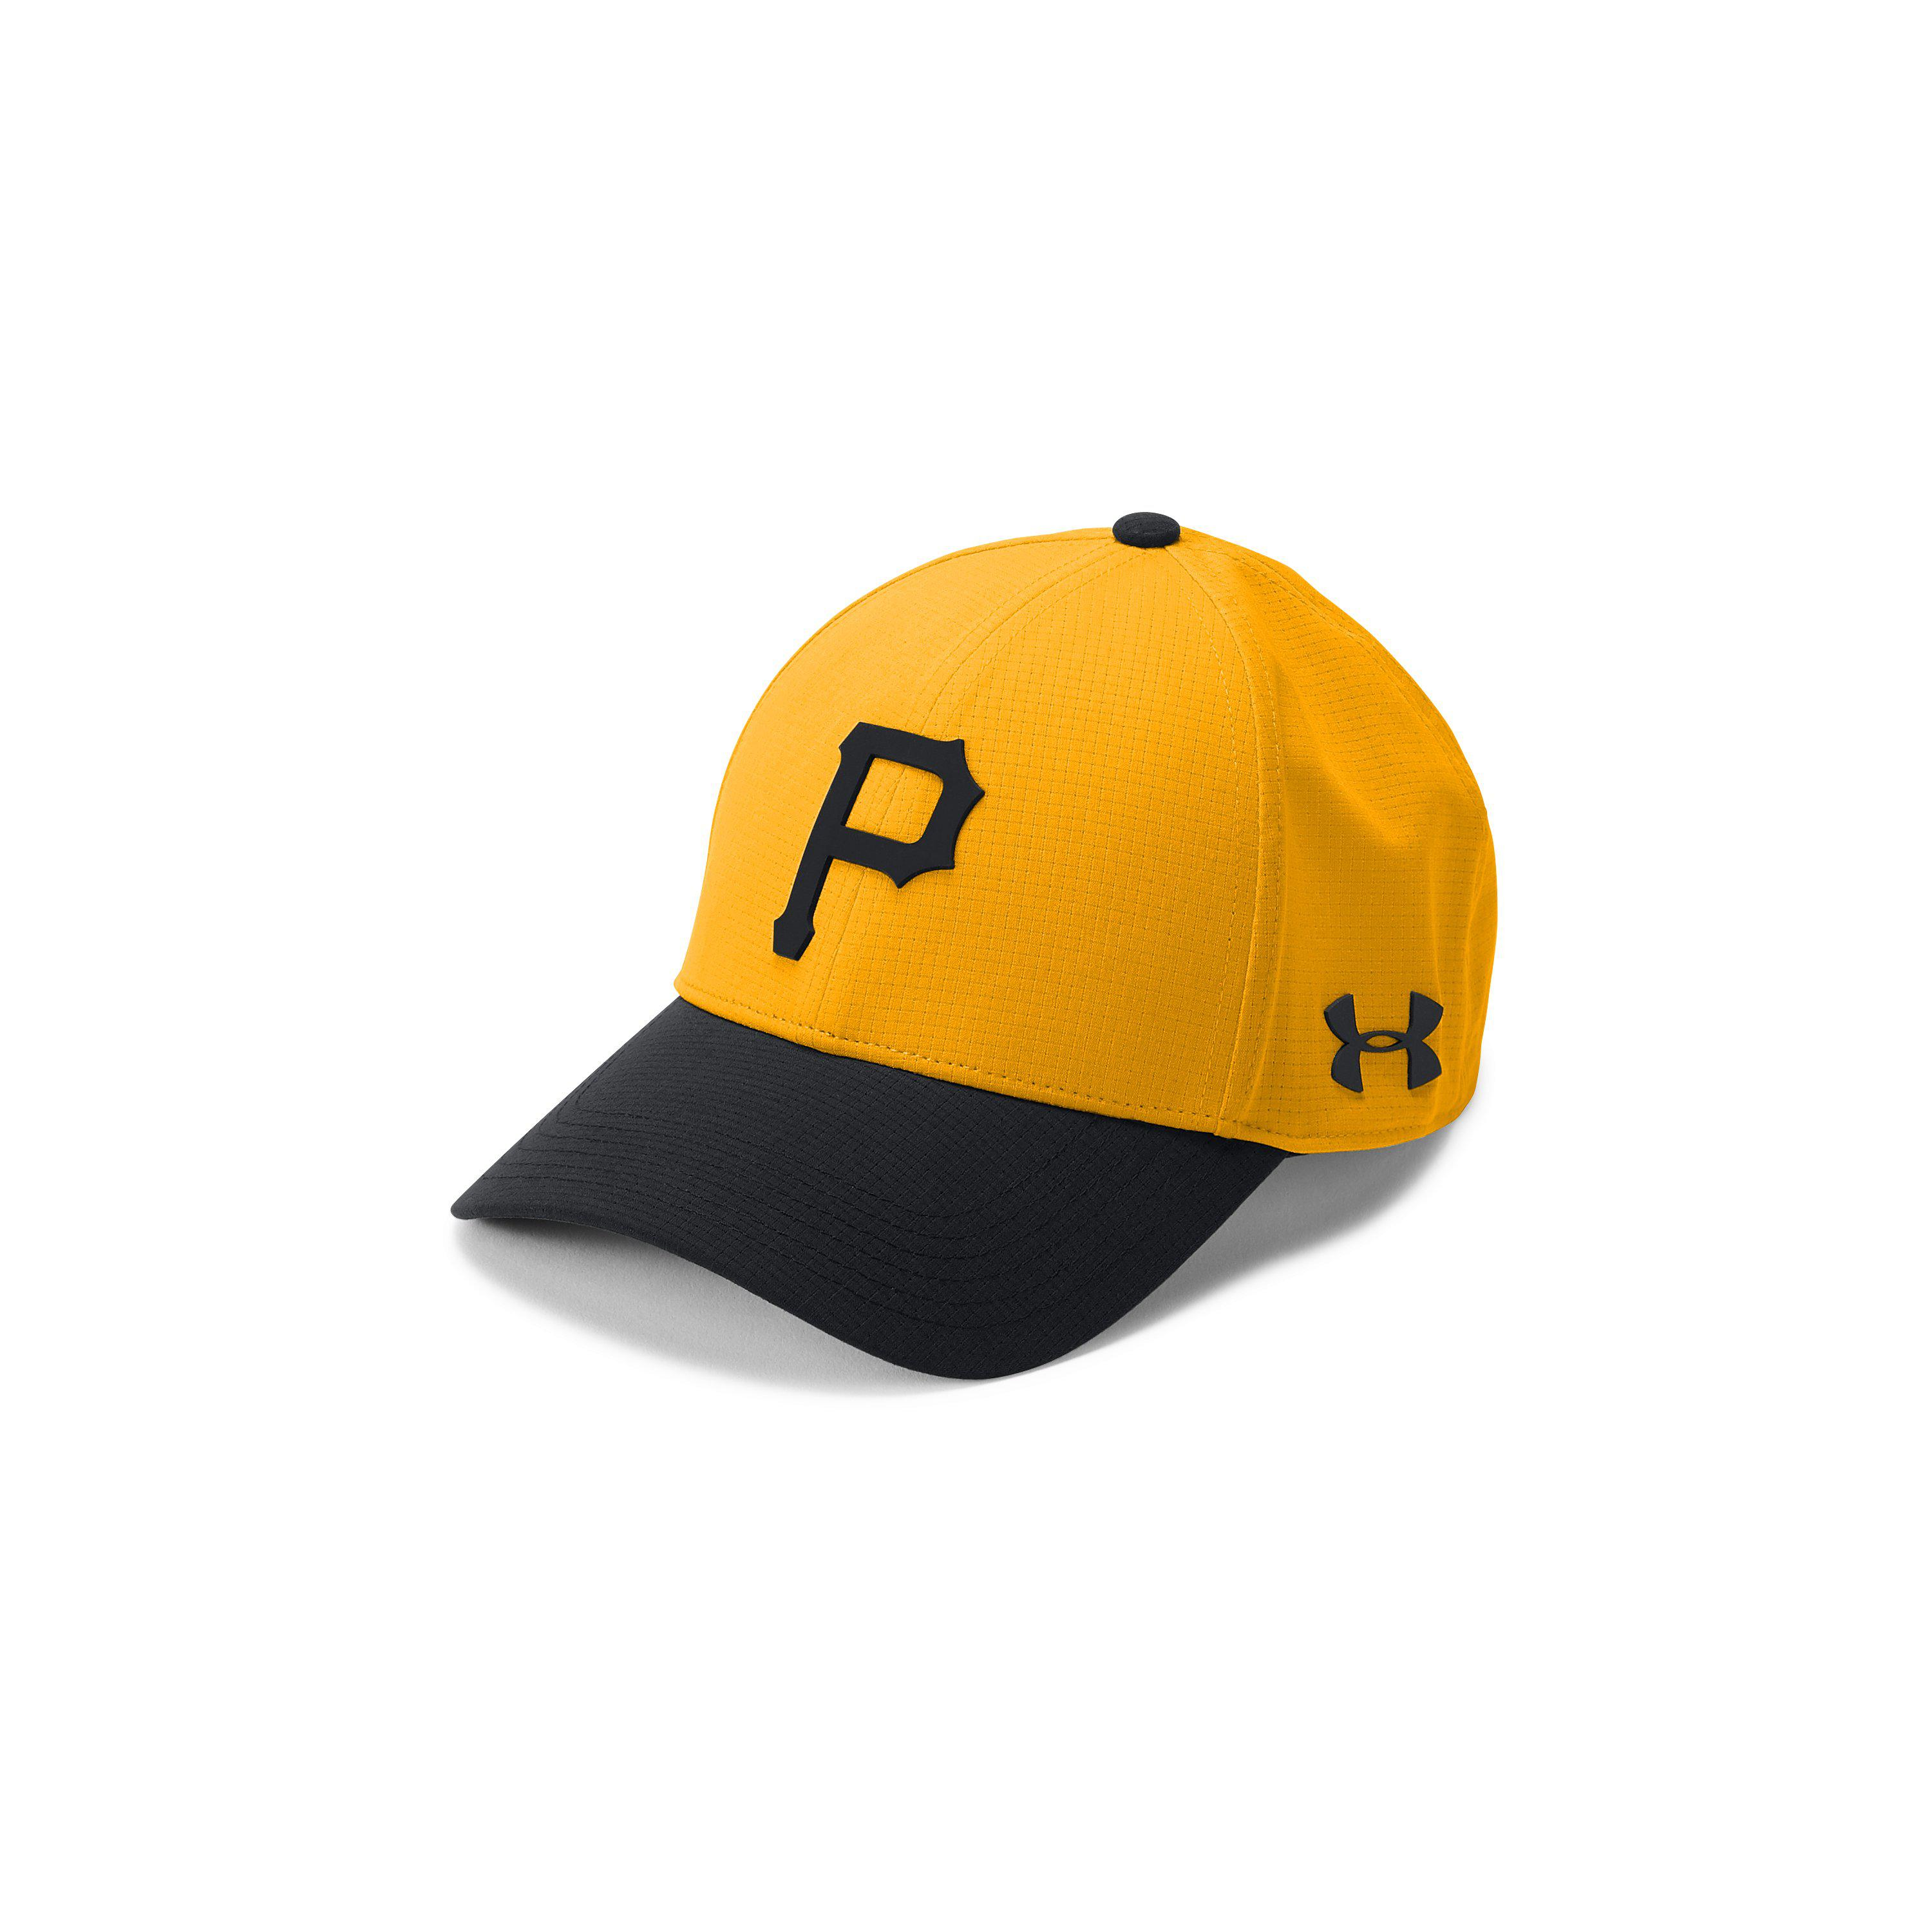 c70a5959144 ... cheap lyst under armour mens mlb driver cap in yellow for men d3ce8  ee7d2